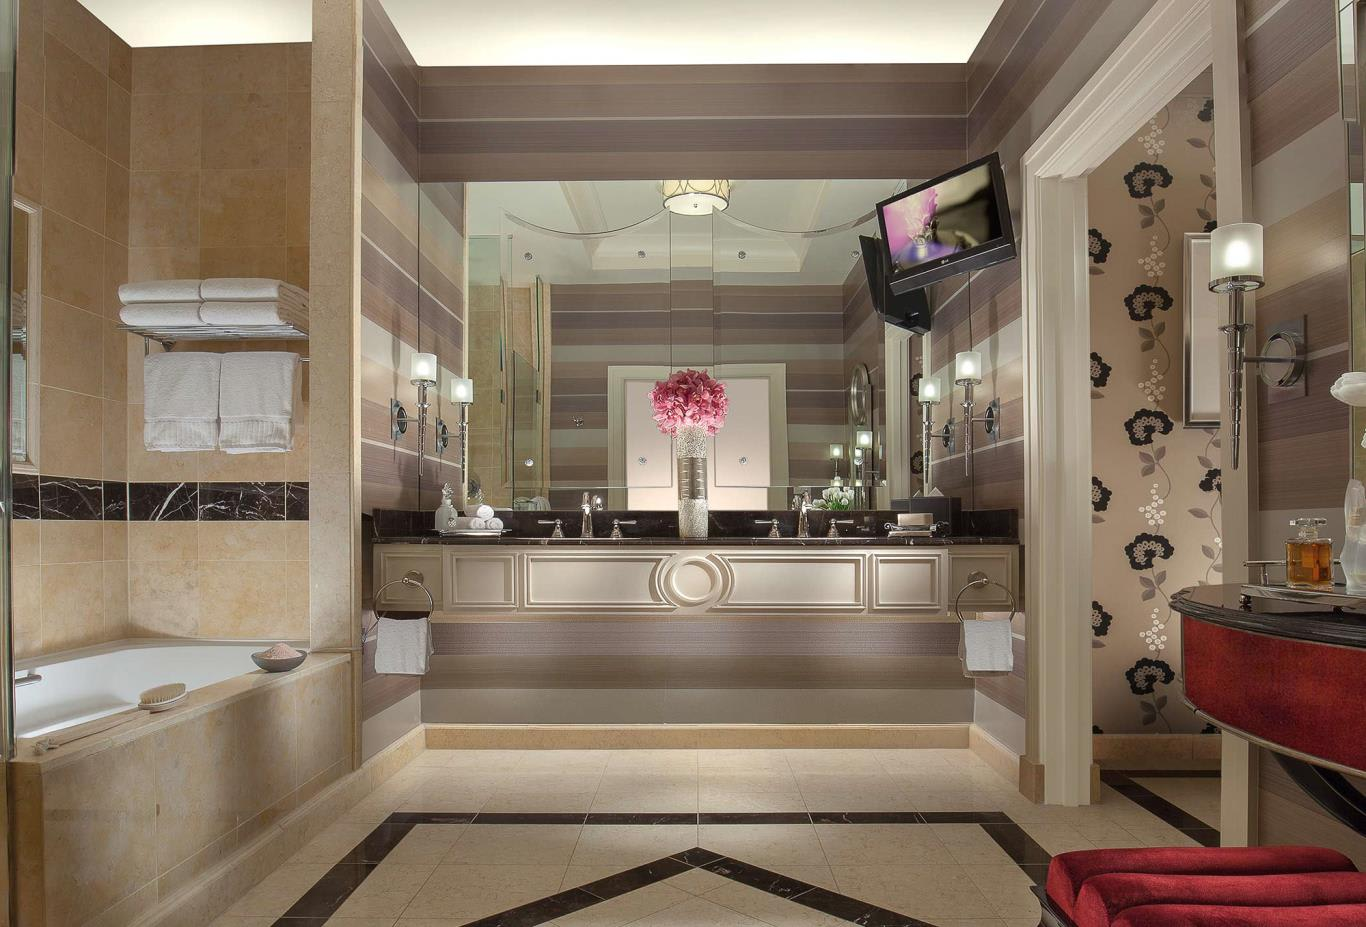 Luxury Suite bathroom